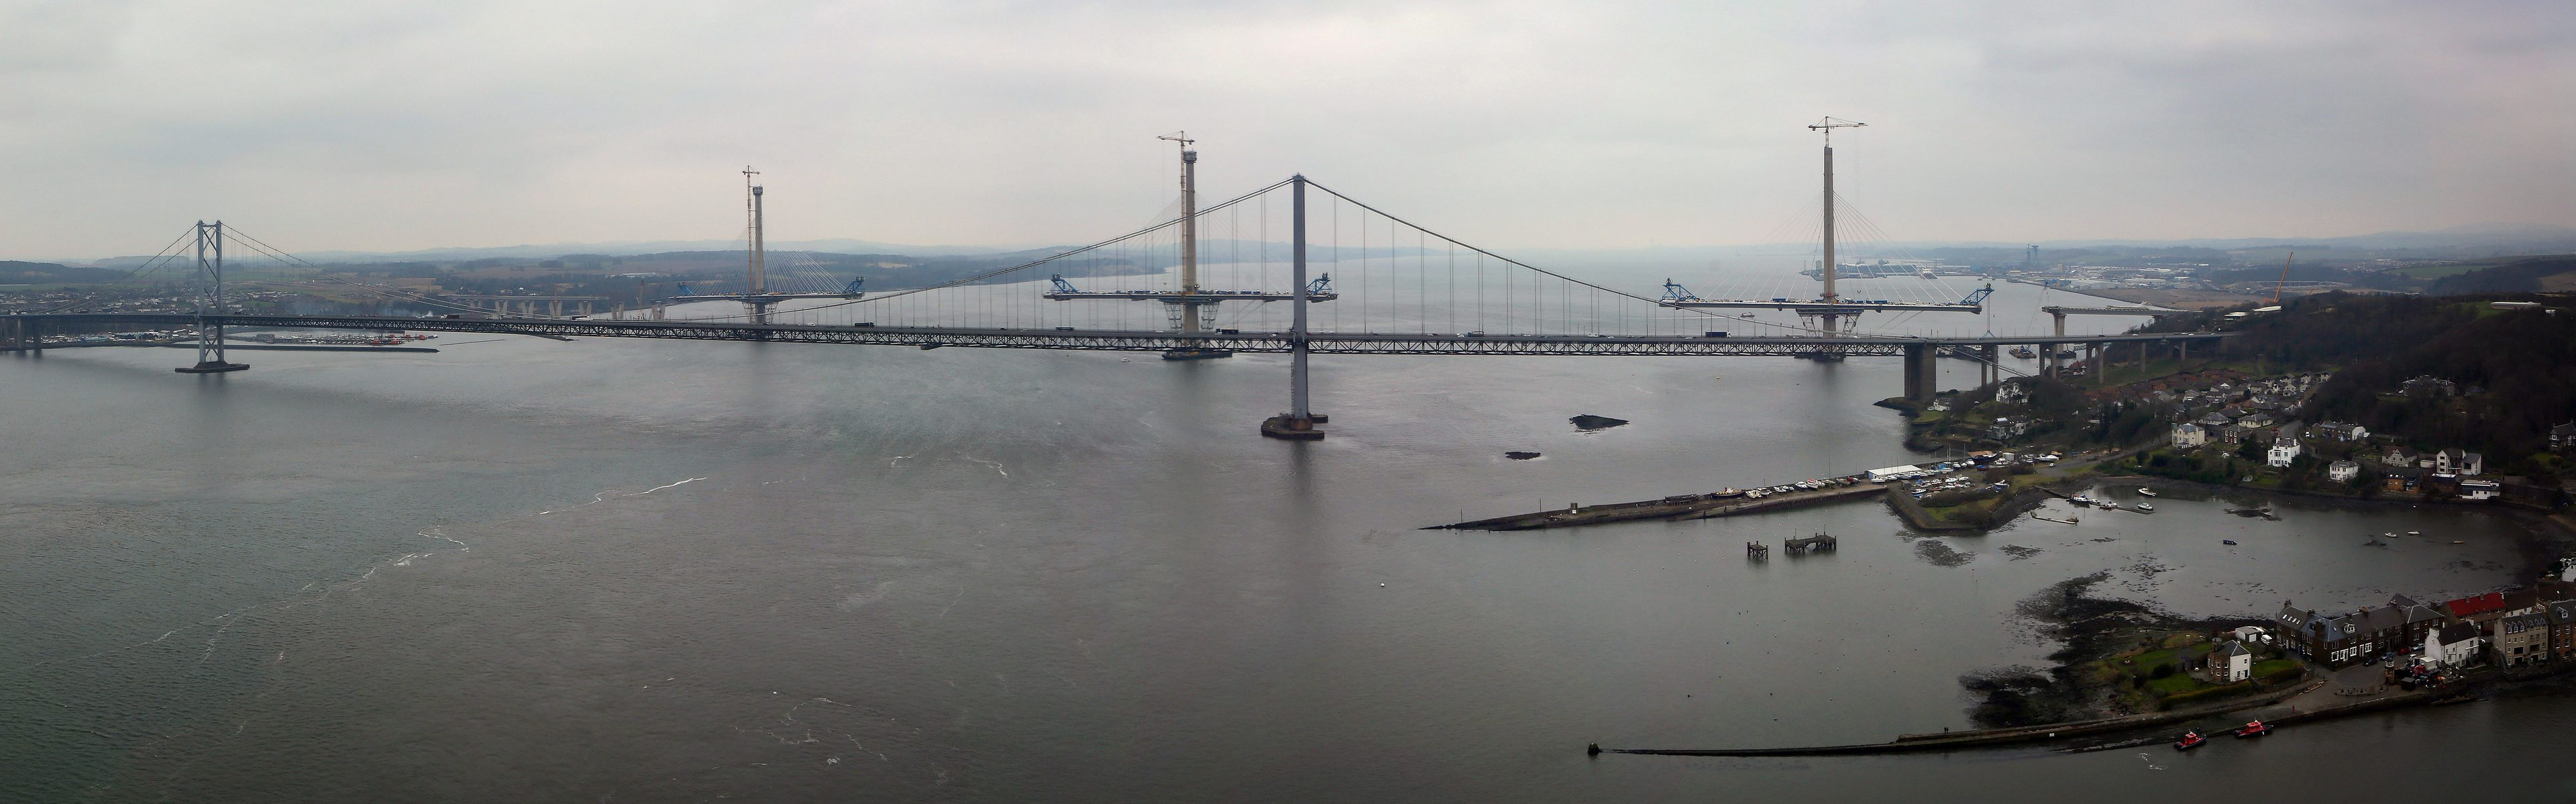 Network problems in Kirkcaldy have been blamed on a cable being cut by accident at the Queensferry Crossing site